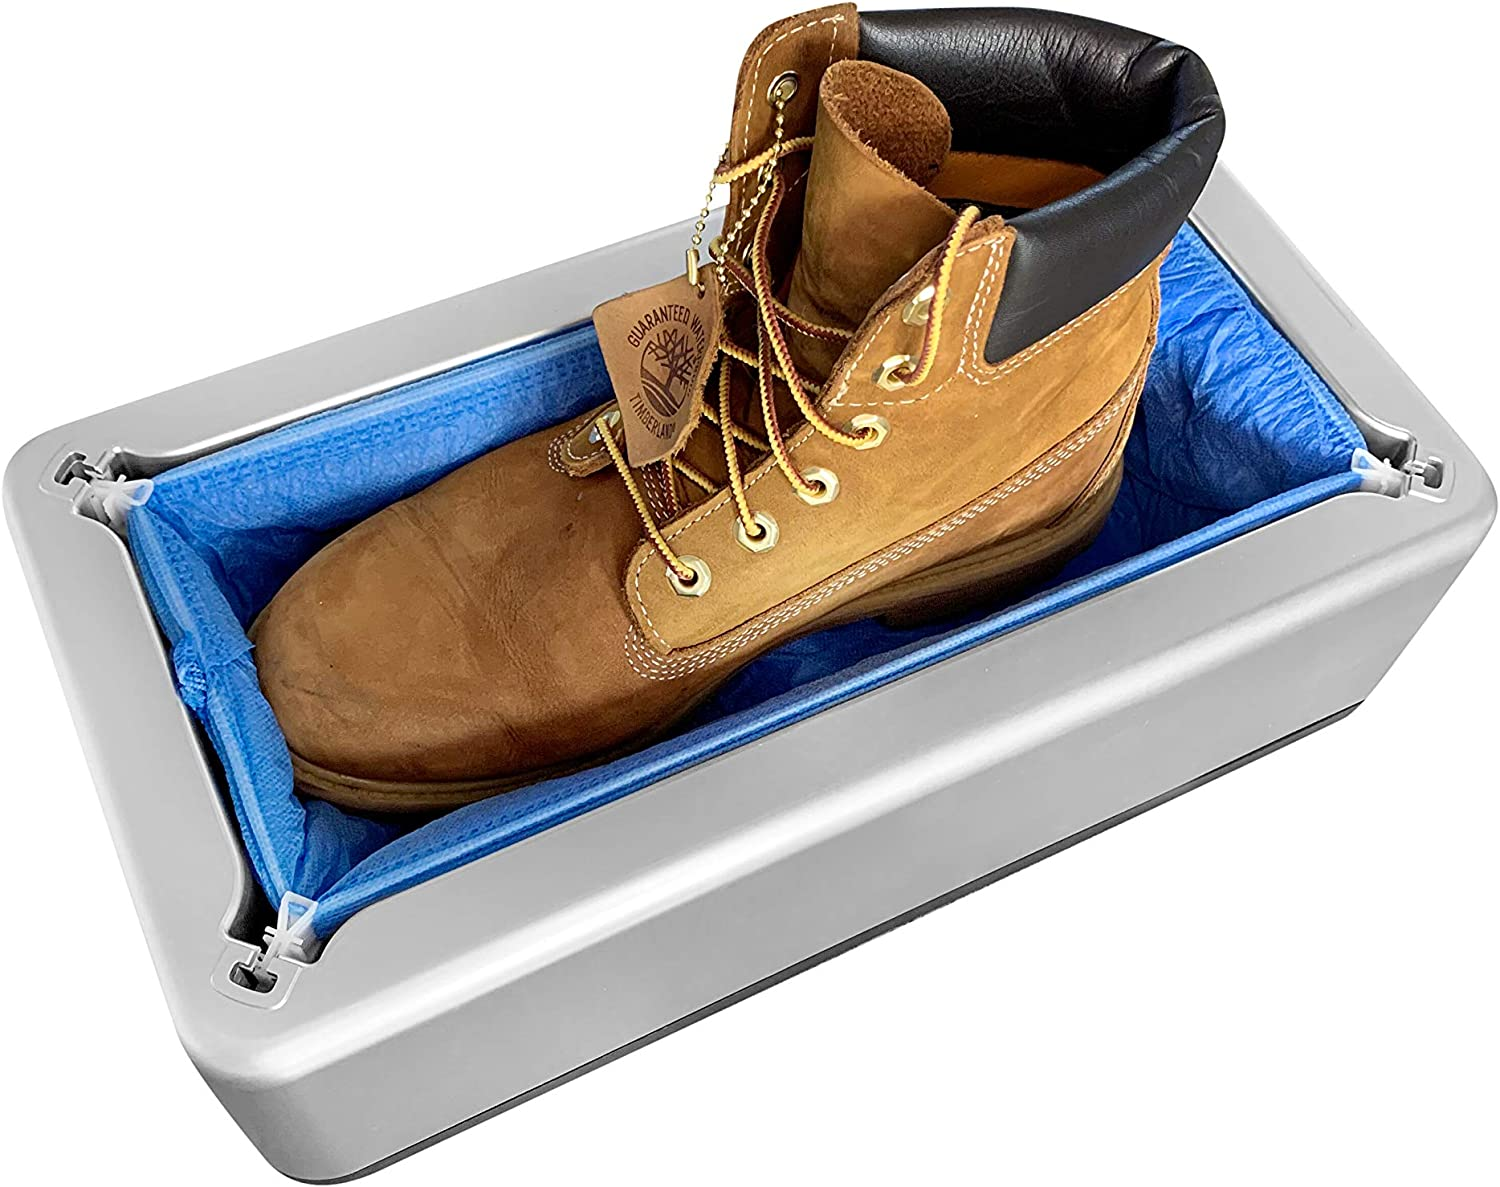 Only Cloth Automatic Protective Shoe Cover Machine with 100 CLOTH Covers INCLUDED!